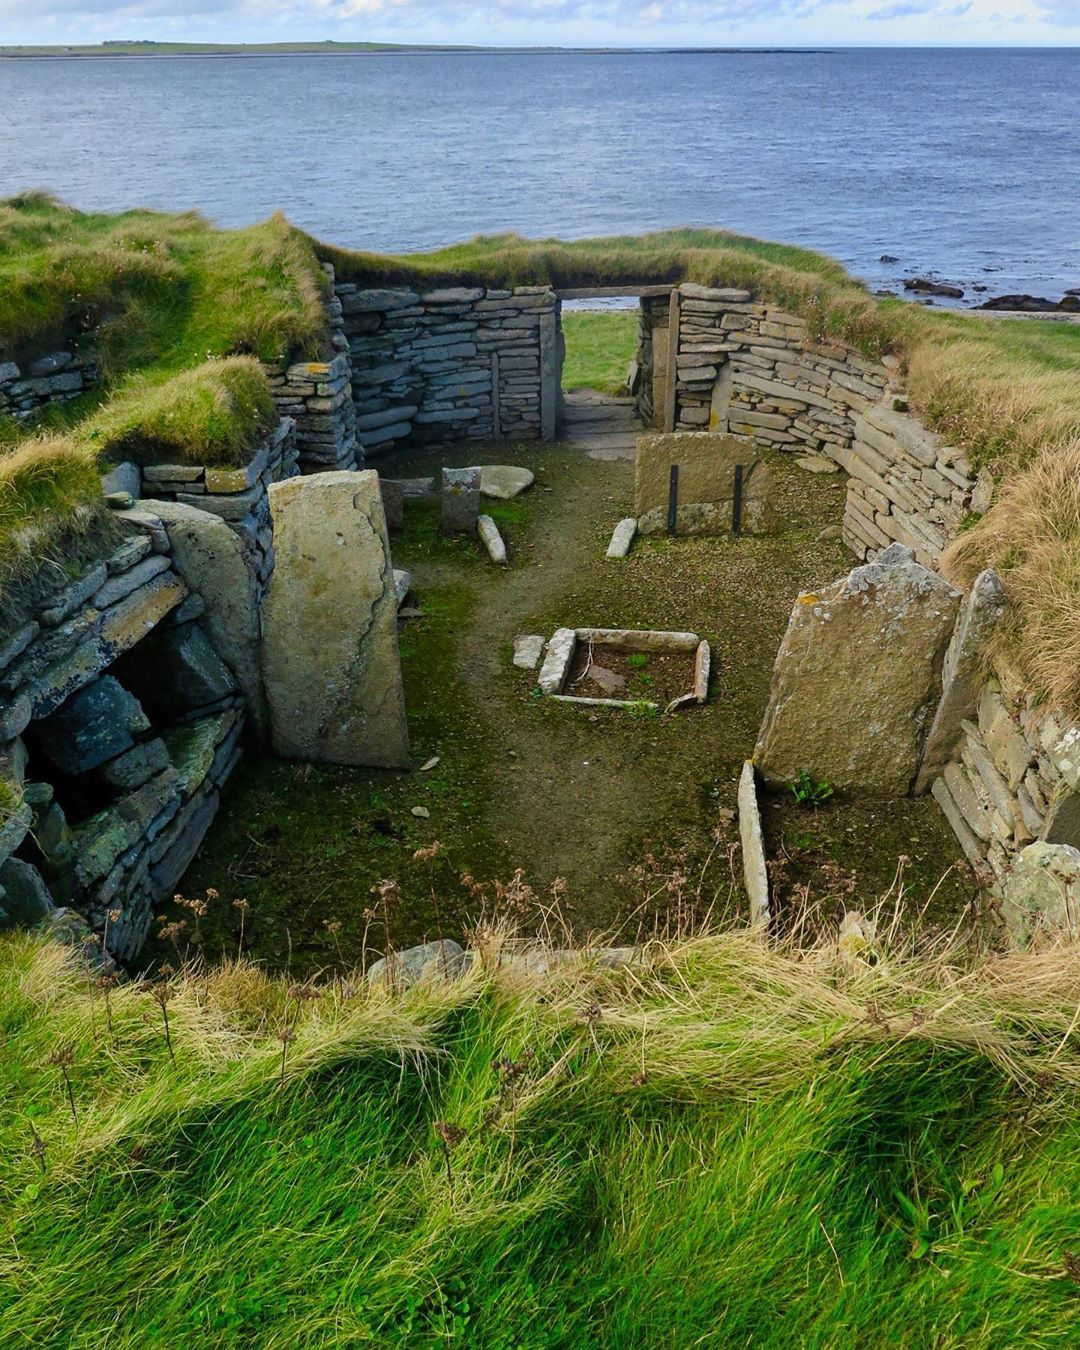 Knap of Howar, 3800 BC, Papa Westray, Orkney Islands #orkneyislands Knap of Howar, 3800 BC, Papa Westray, Orkney Islands #orkneyislands